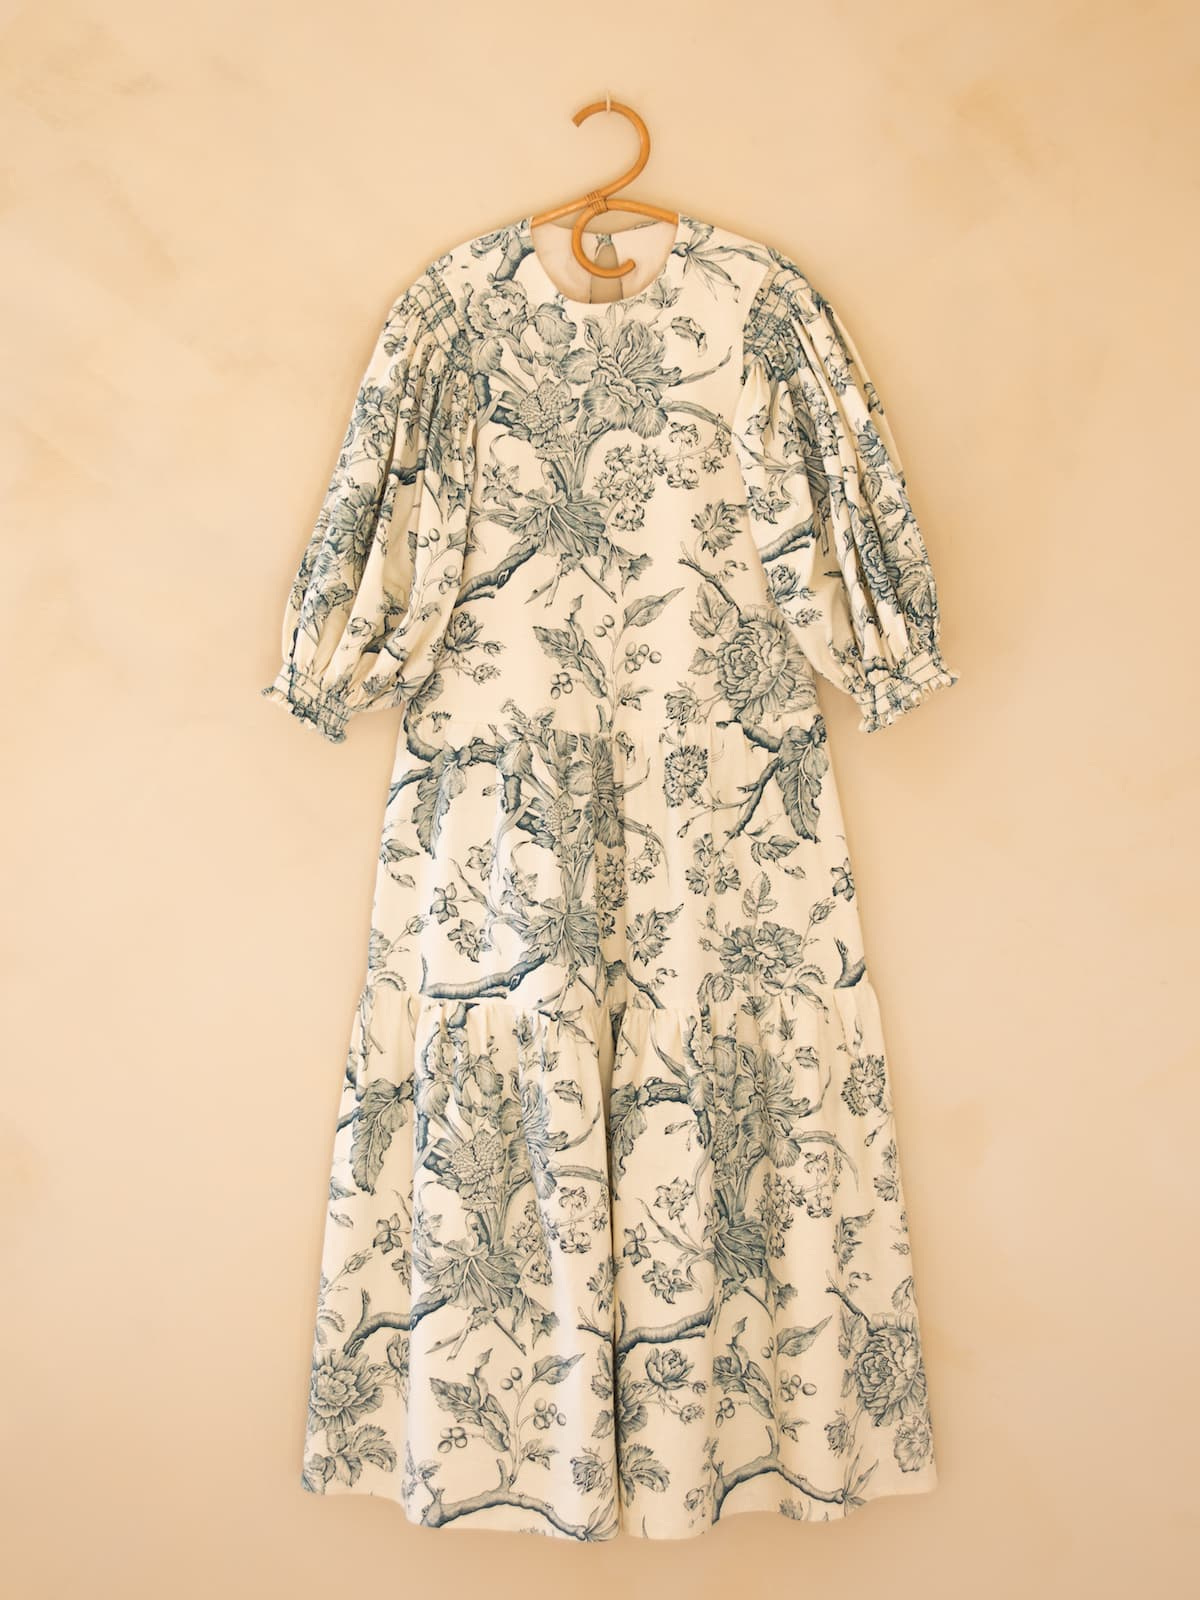 modular toile de Jouy dress